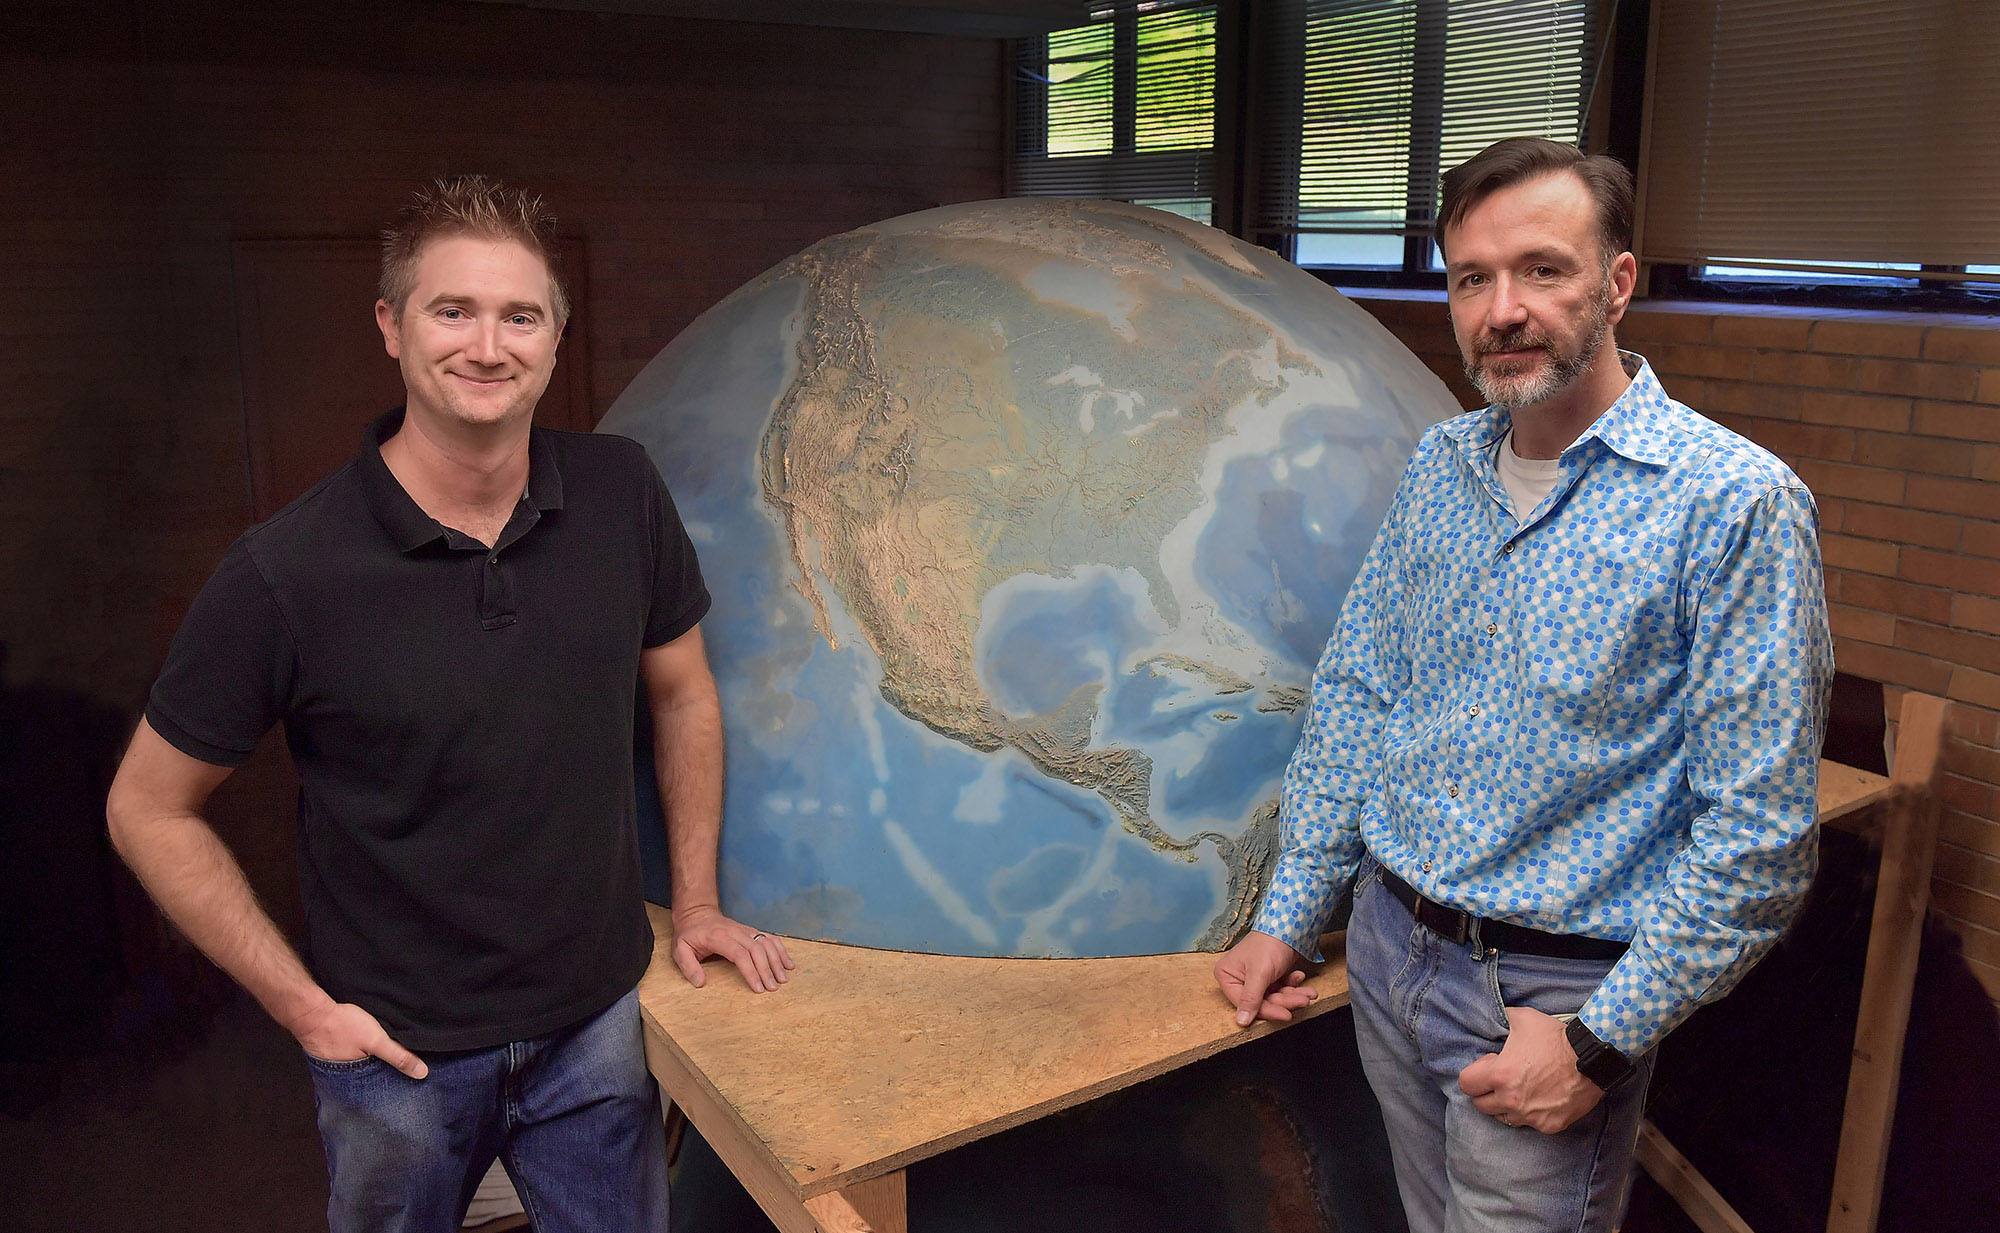 Cameron Lee, Ph.D., (left) and Scott Sheridan, Ph.D., (right) from Kent State University's Department of Geography have teamed up to secure two research grants to study climate change and weather patterns.